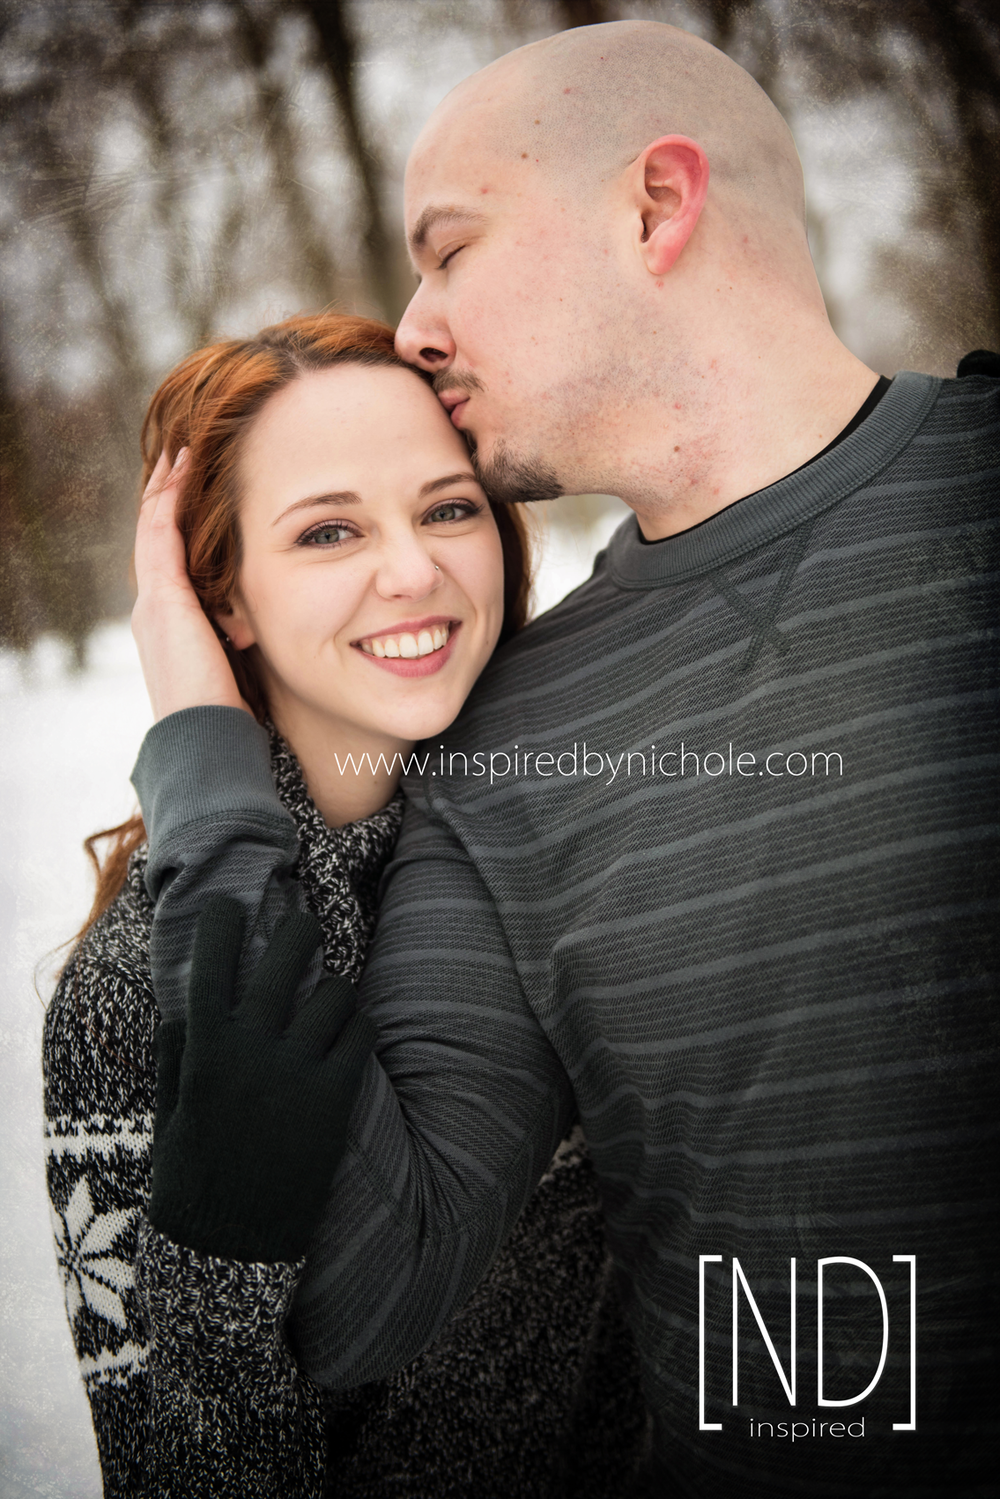 Engagement-Snow-Photography-Winter-05.png